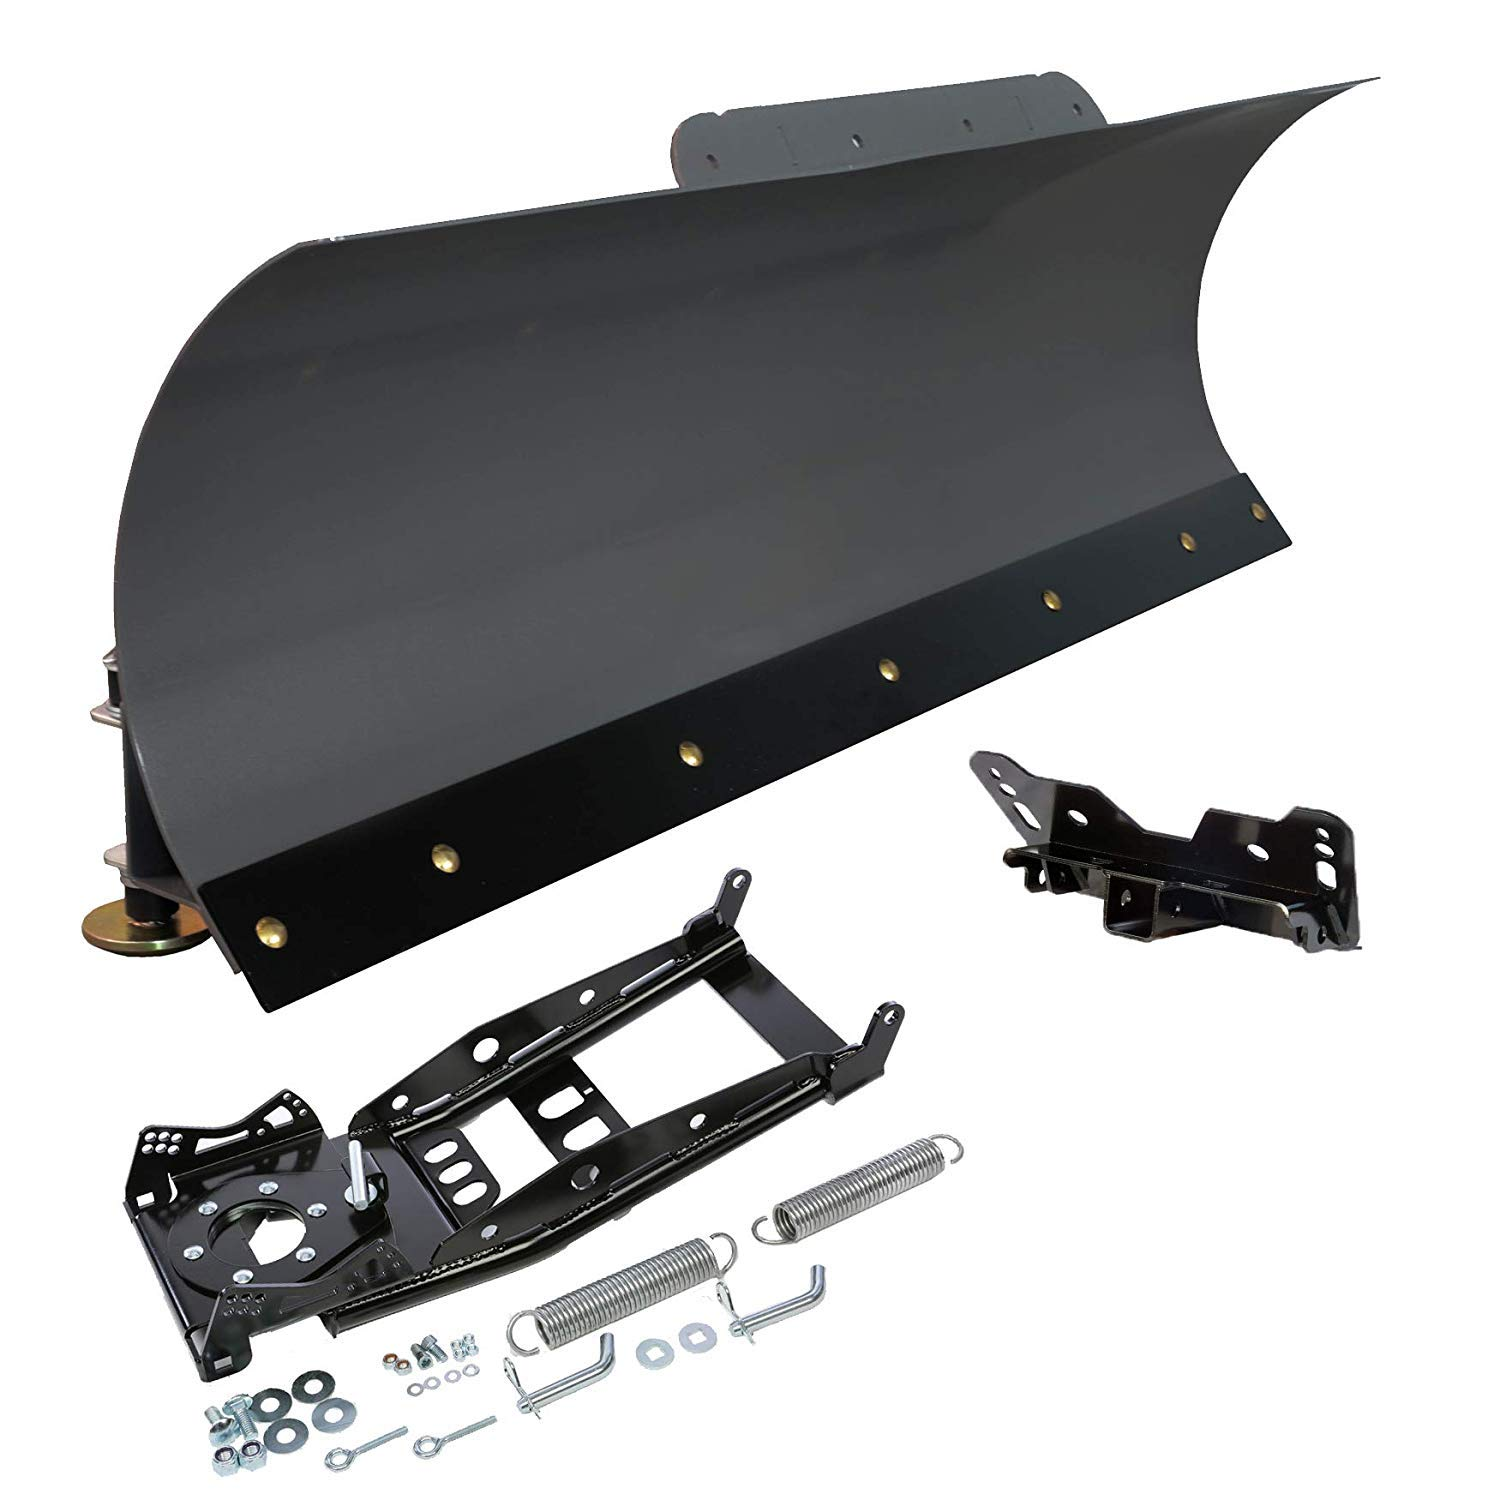 KFI 72'' UTV Steel Blade Snow Plow Kit for Kubota RTV-X 900 1100C 1120D ('Current)